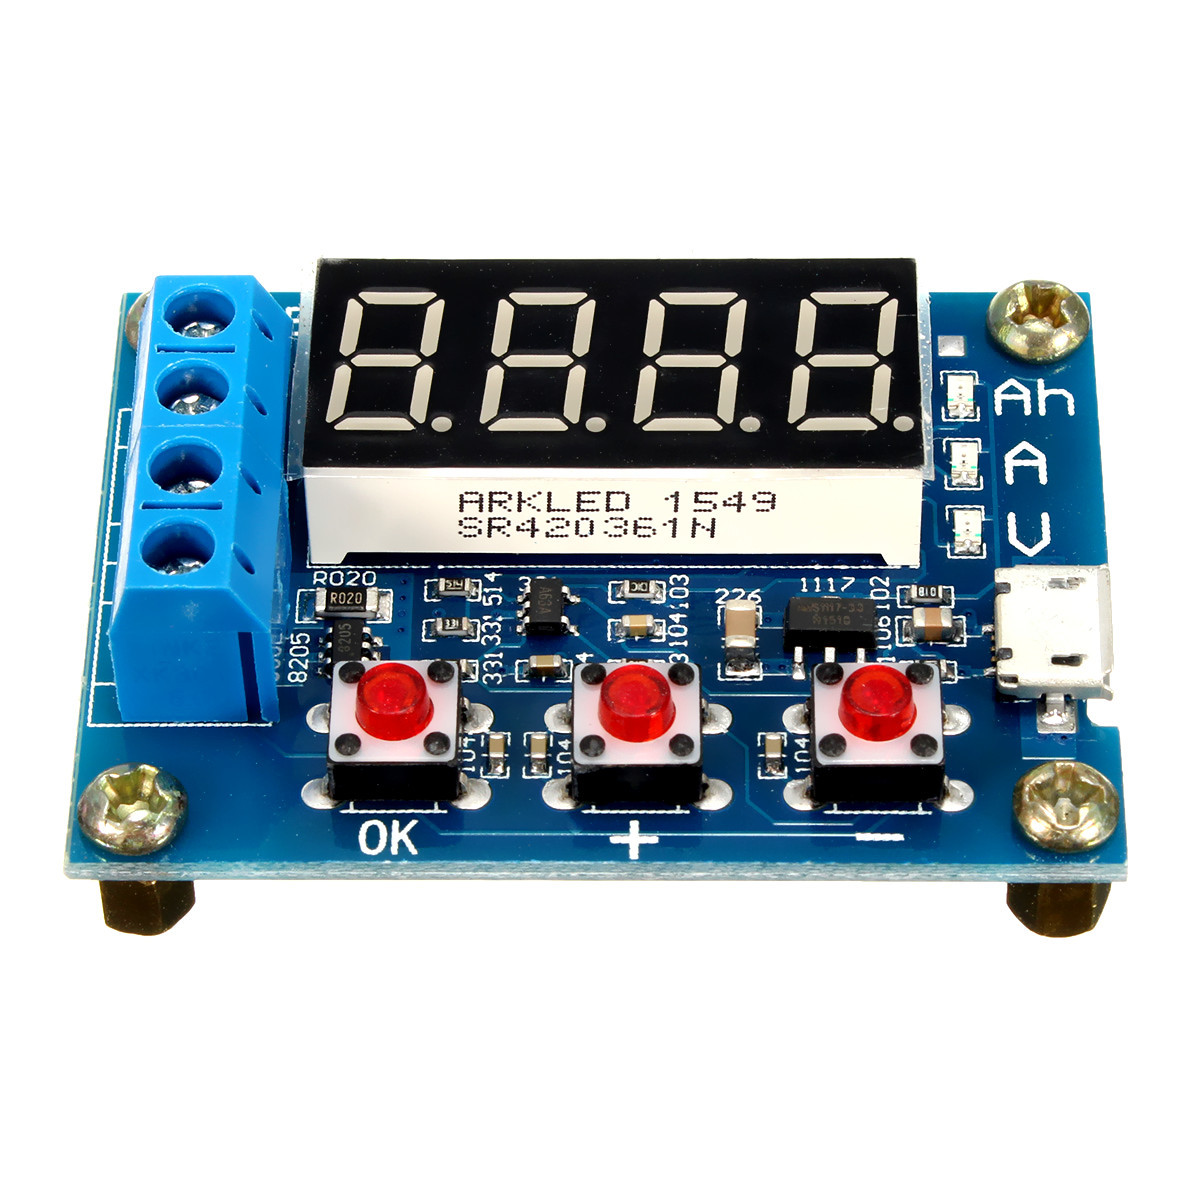 1.2v - 12v Battery Capacity Meter Tester For 18650 li-ion/lead-acid Battery